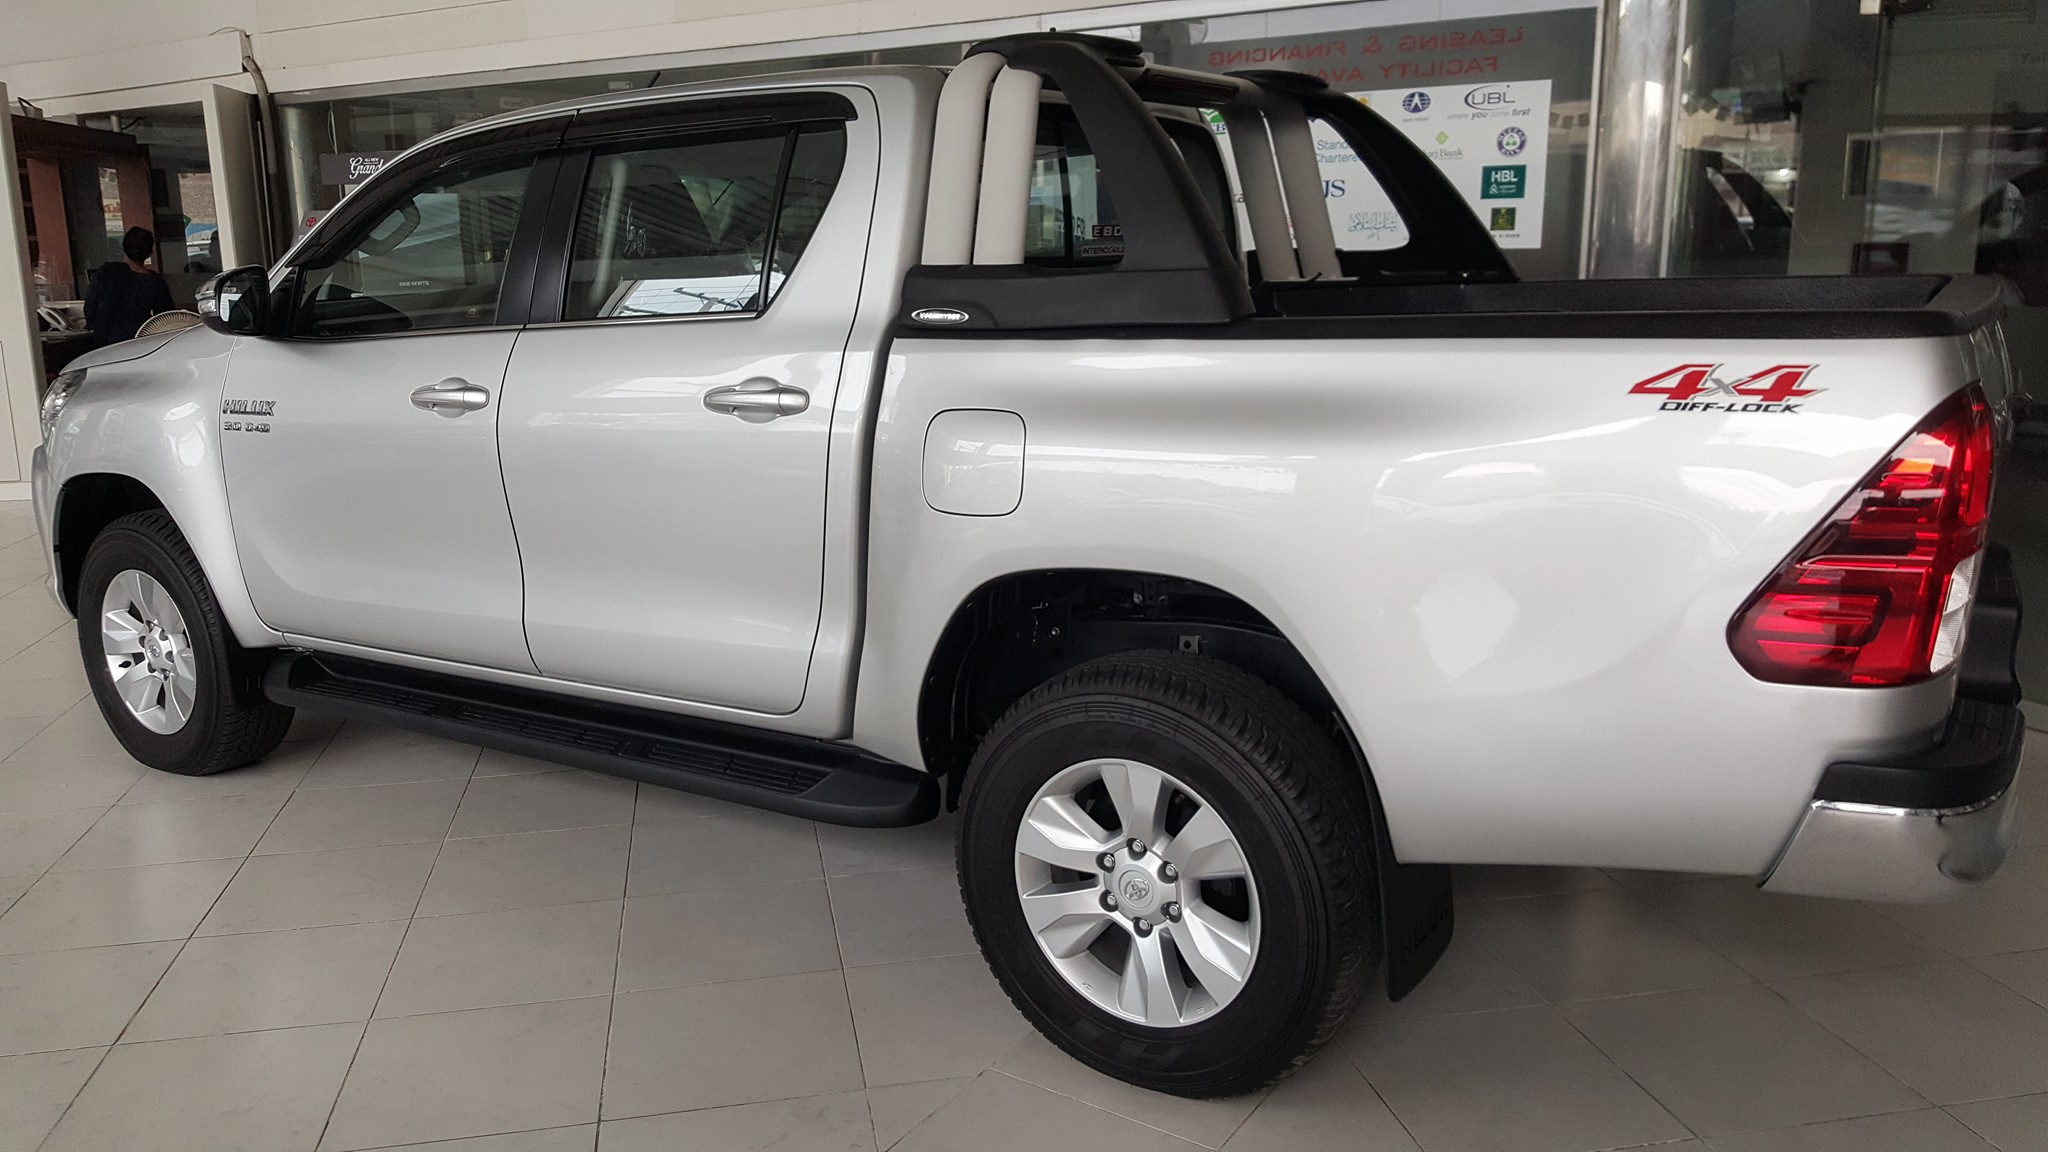 Toyota Hilux Wins Back 96.1% Share of the Market 3